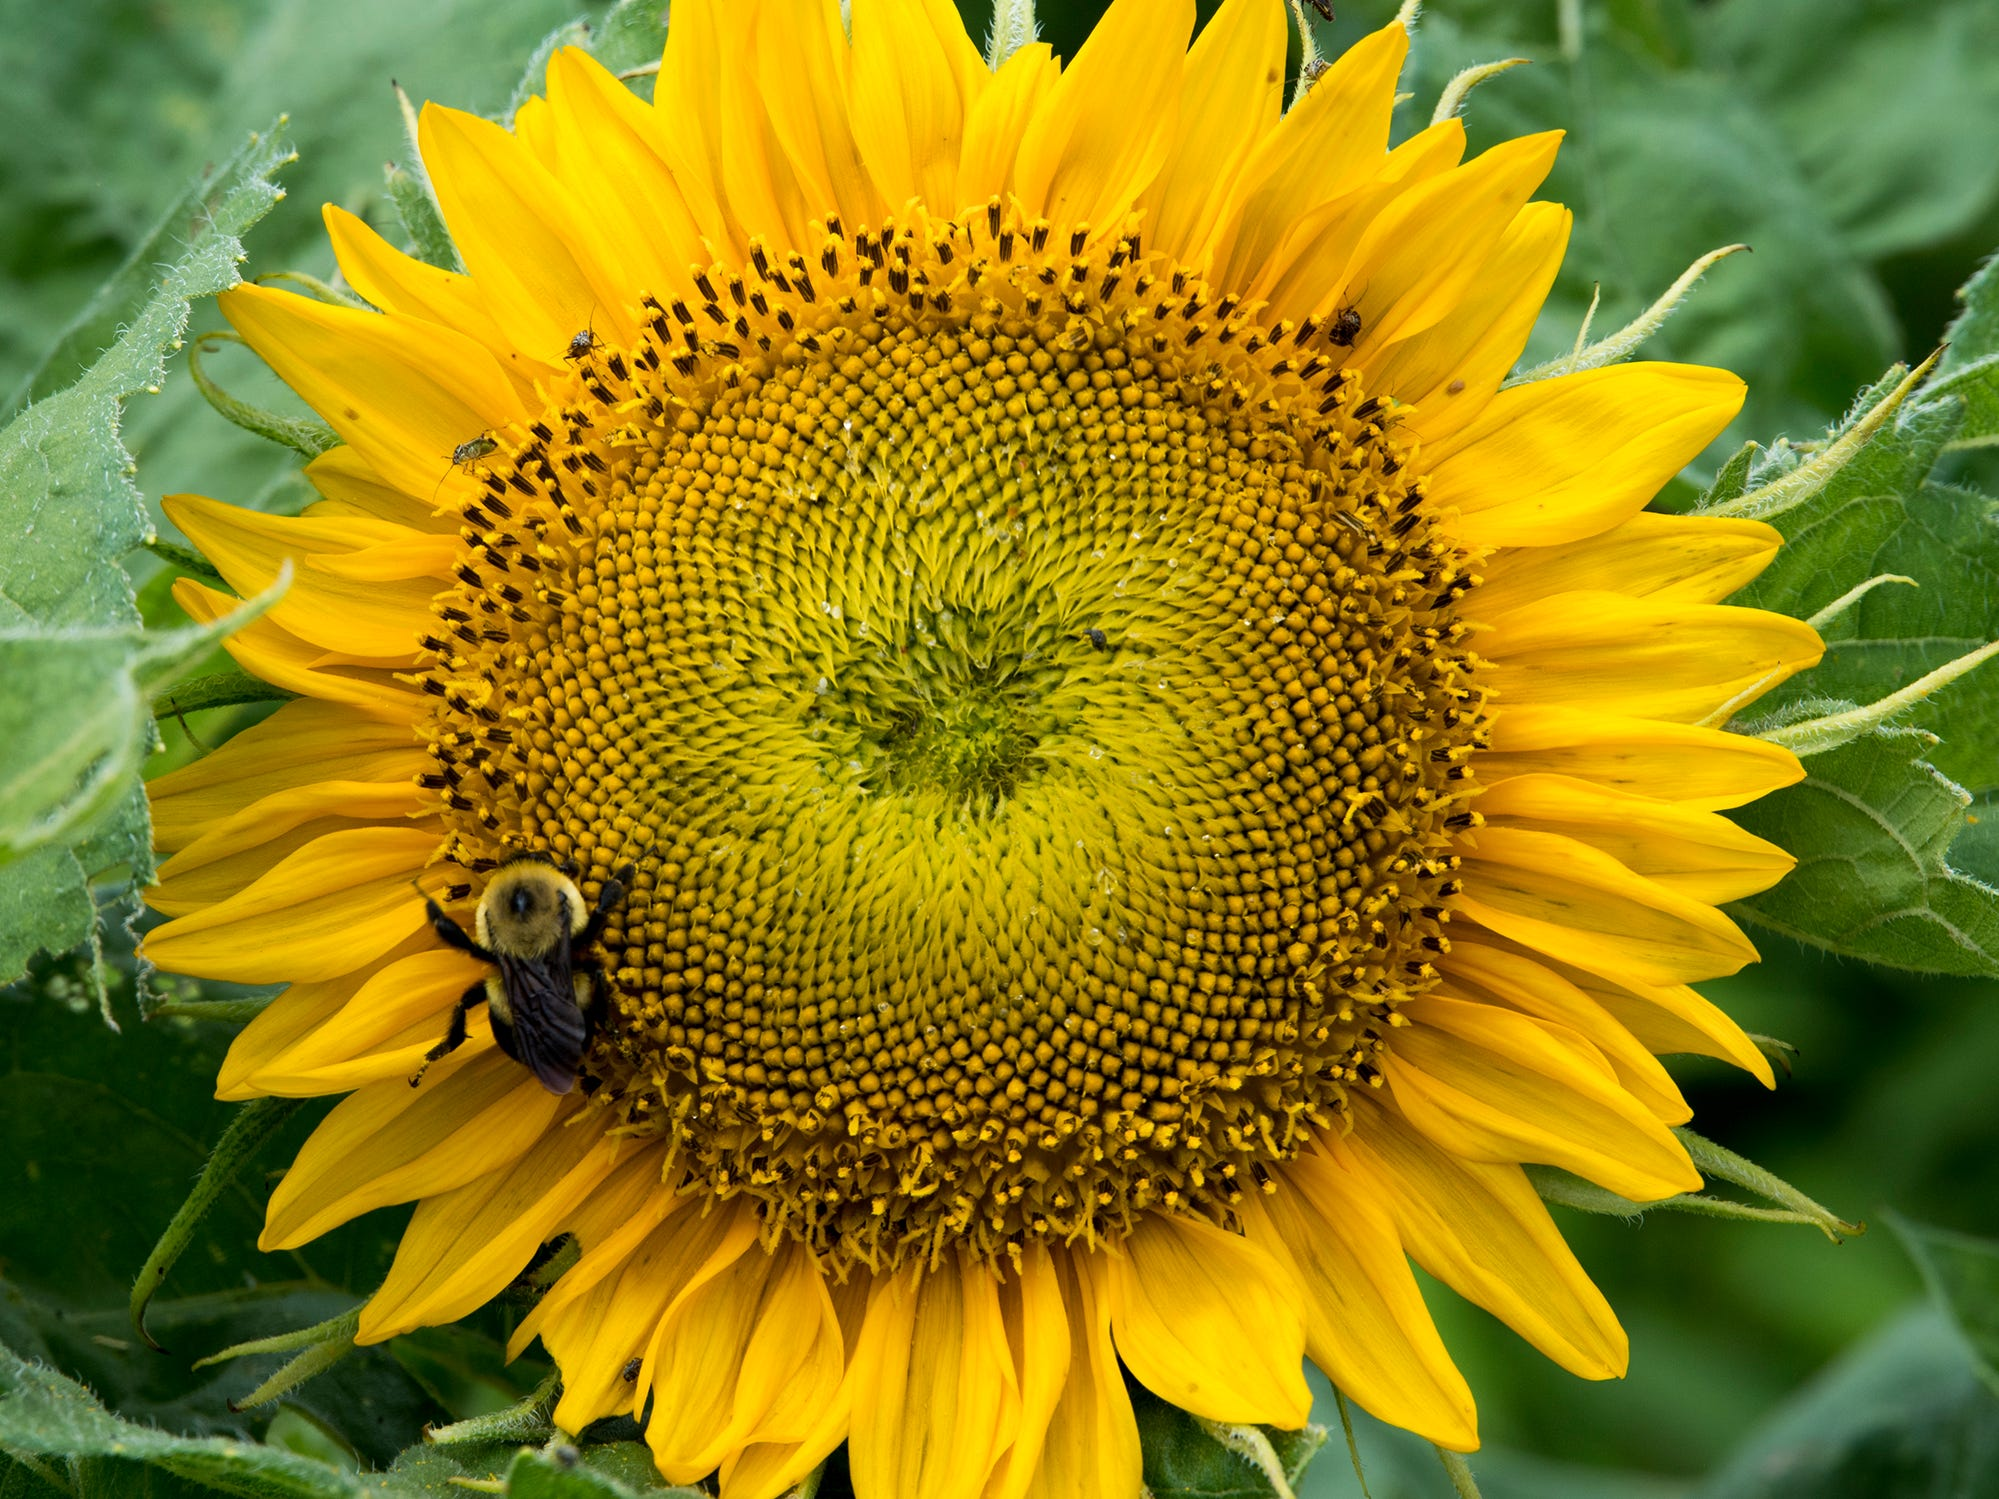 A pollinator works on a sunflower during the 2nd Annual Sunflower Festival at Maple Lawn Farms near New Park.